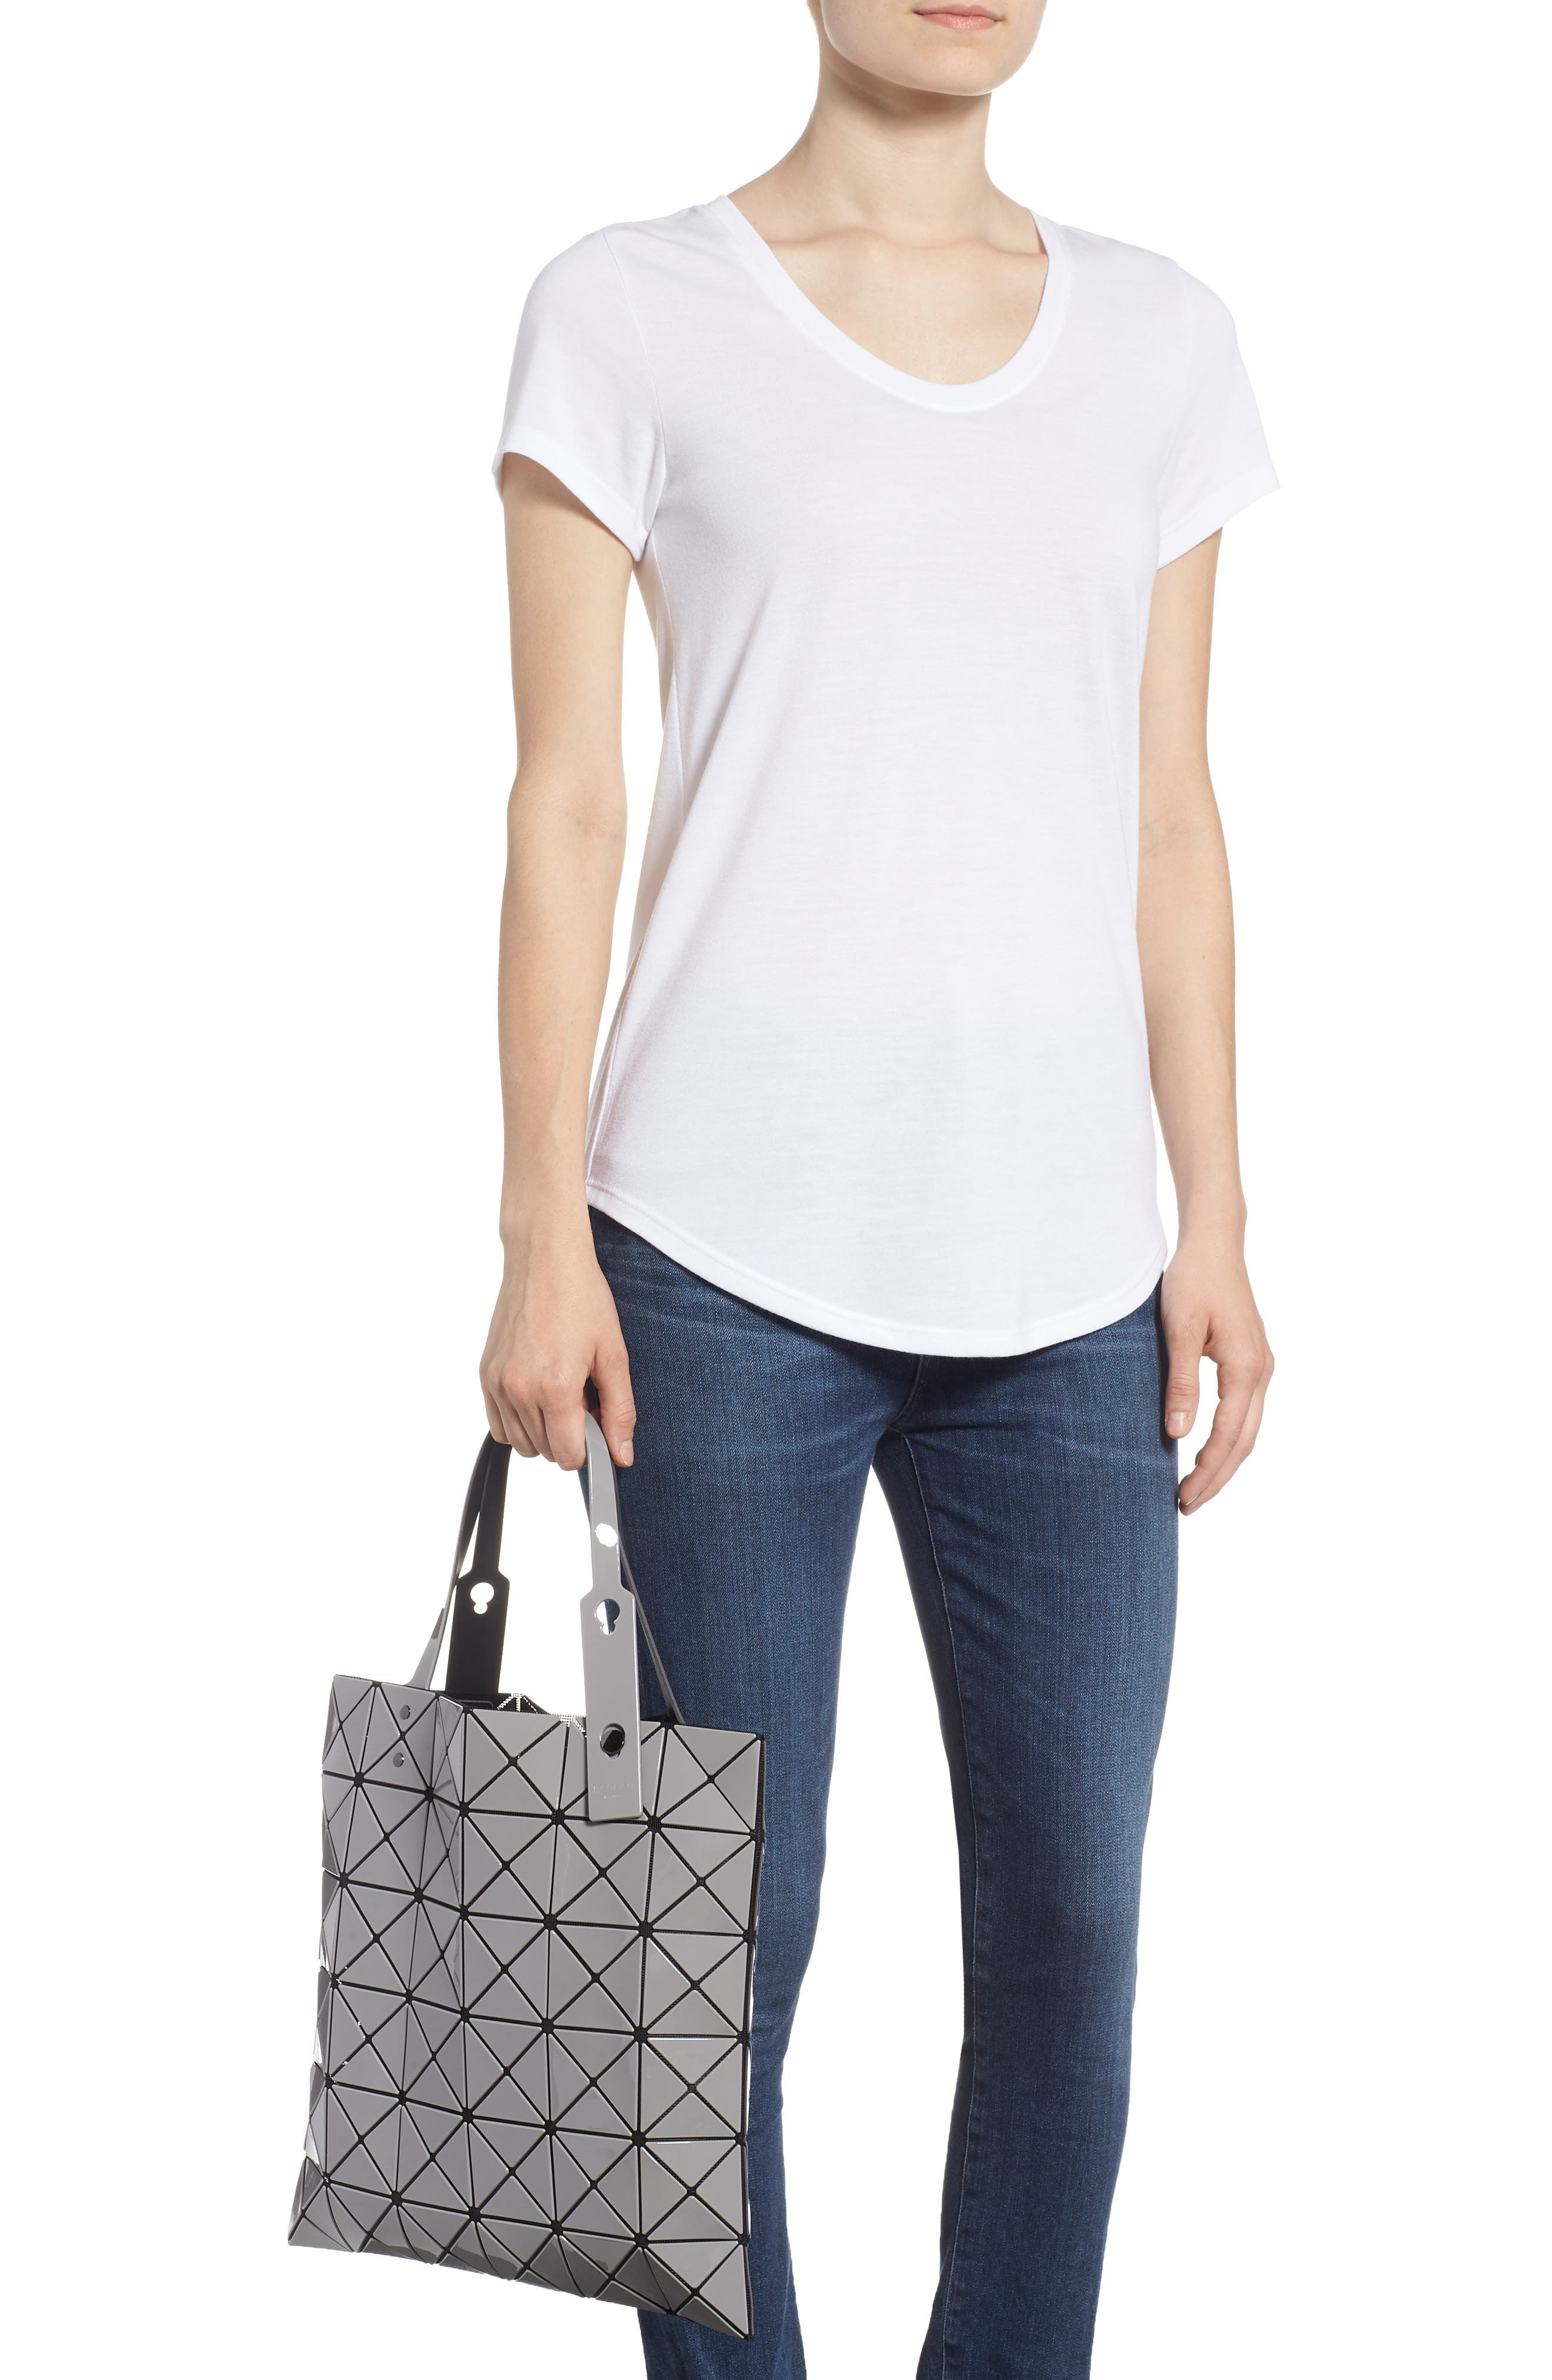 Lucent Two-Tone Tote Bag,                             Alternate thumbnail 2, color,                             020